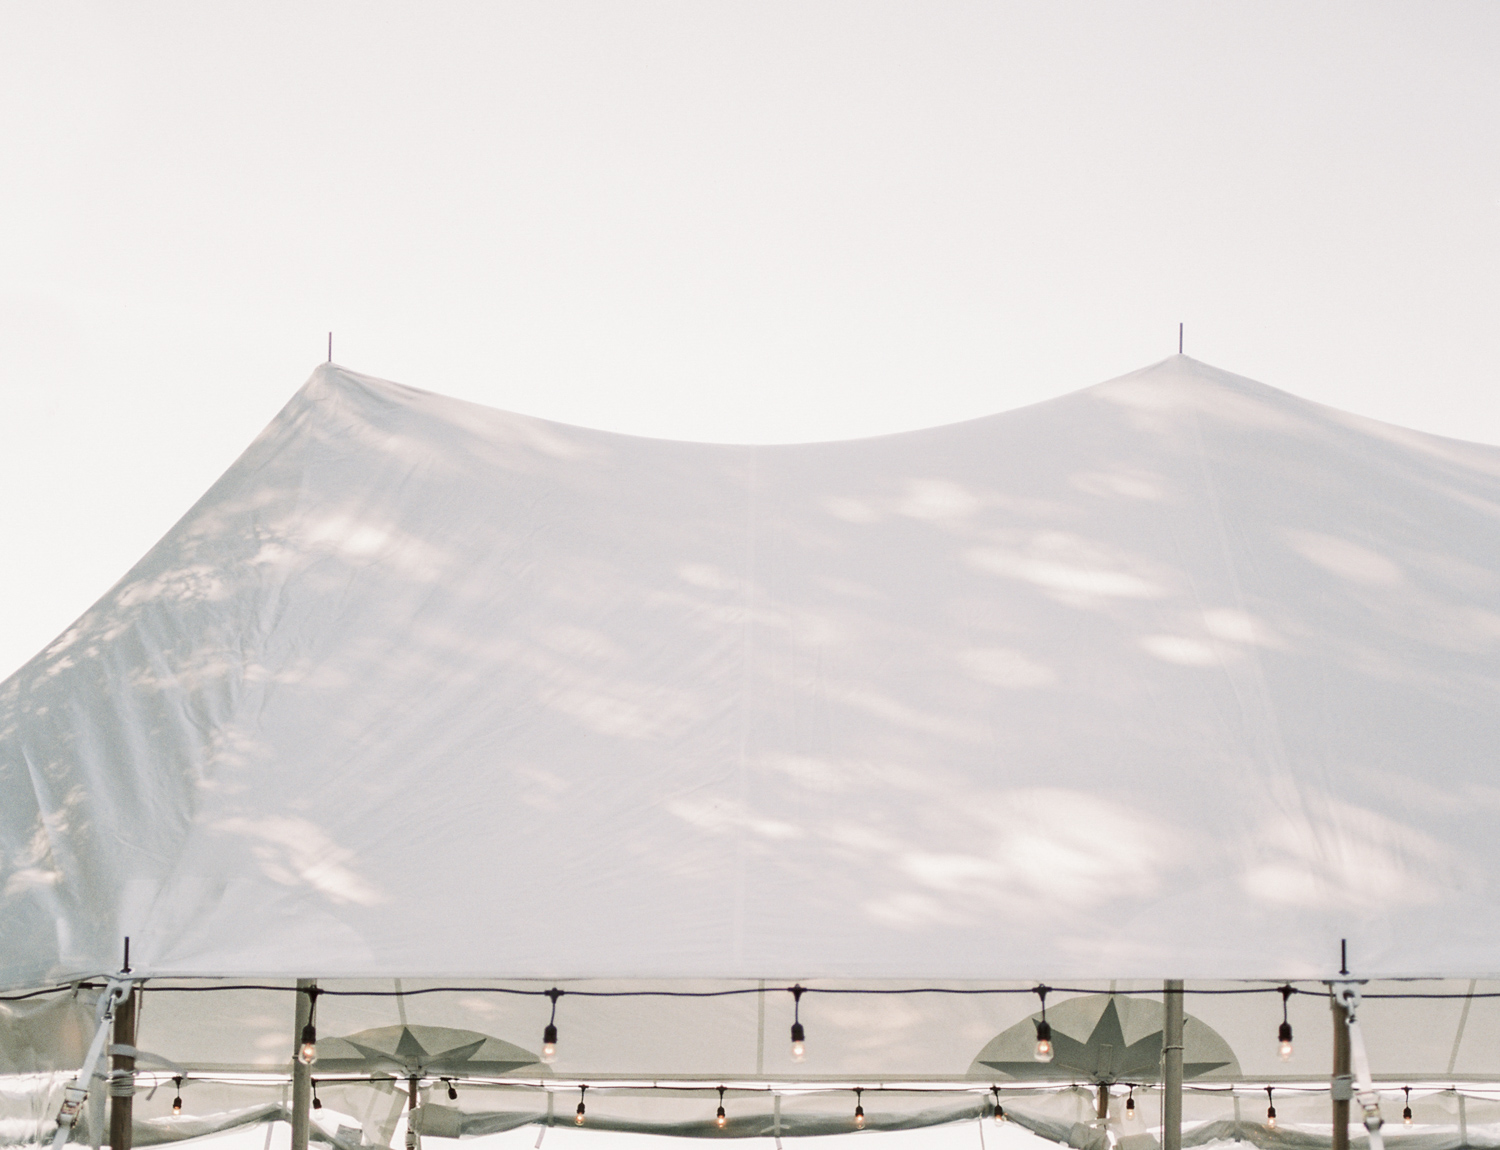 dappled light is scattered across a sailcloth tent, captured on film during a Northern Michigan wedding